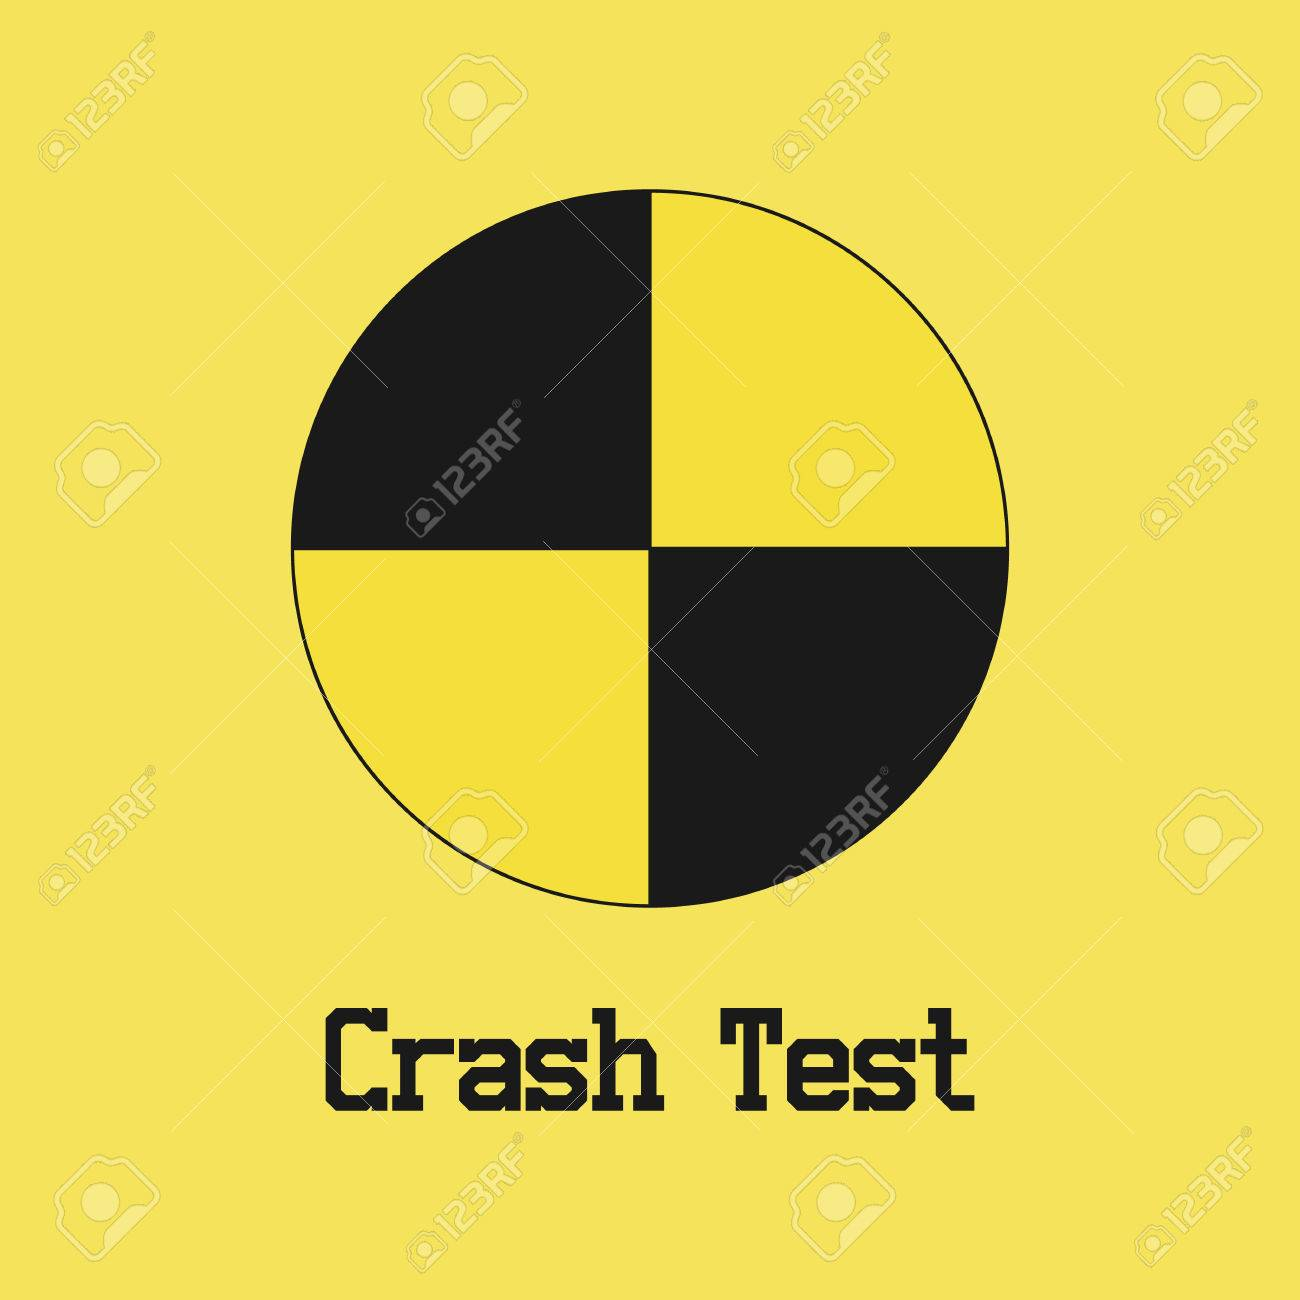 214 Crash Test Dummy Stock Illustrations Cliparts And Royalty Free